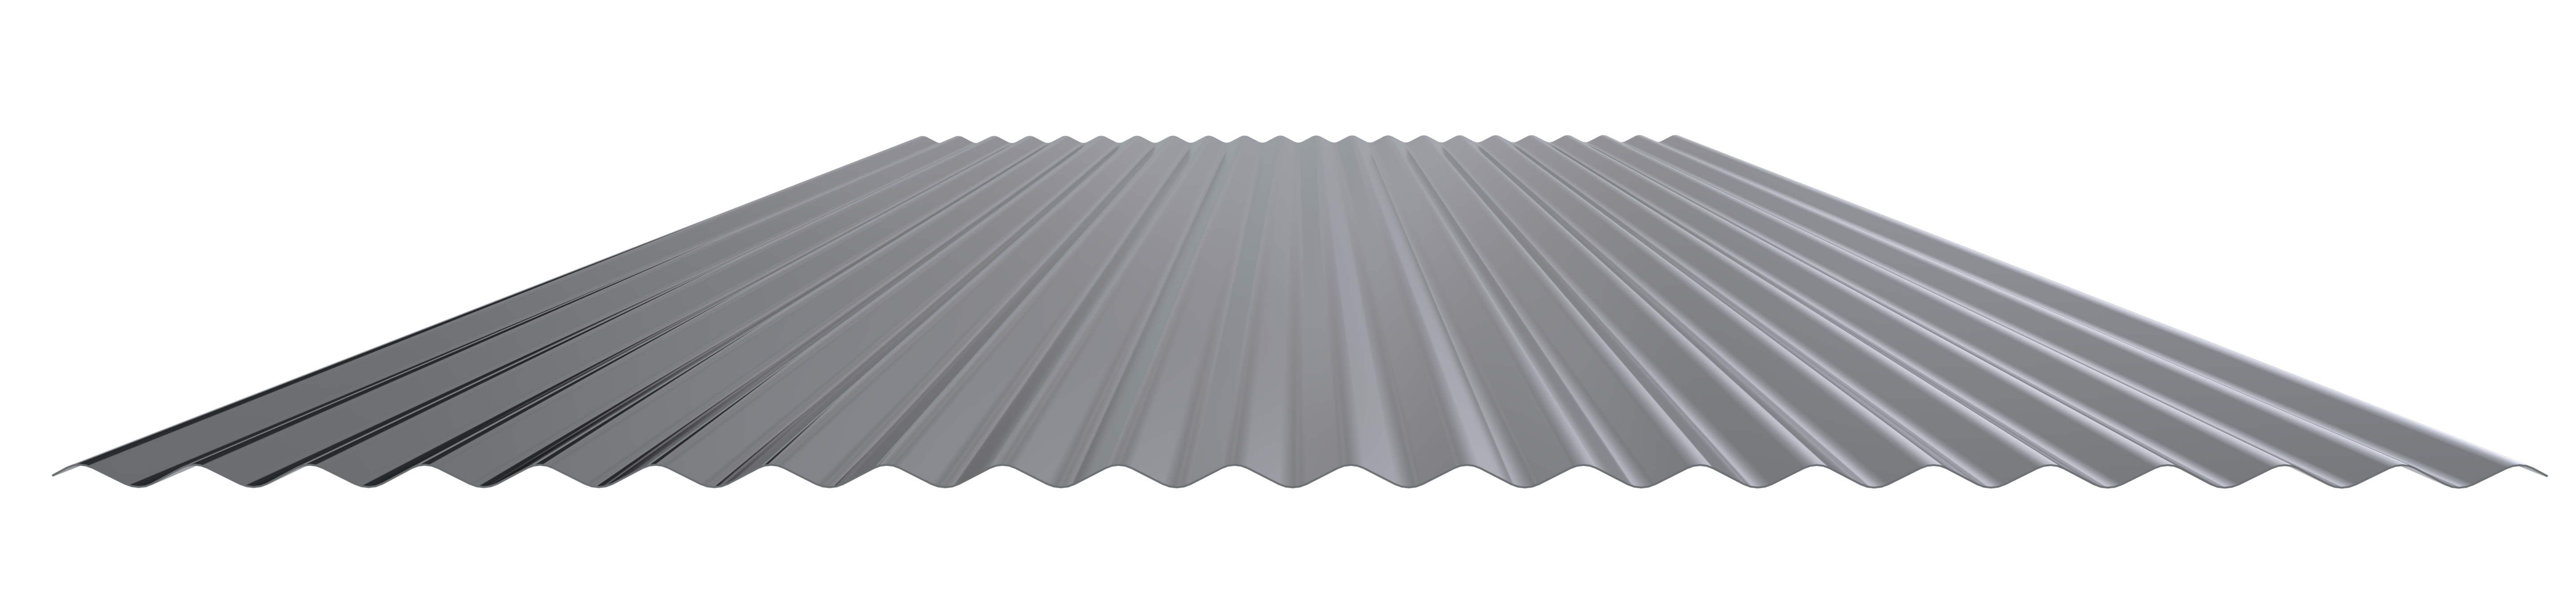 1 4 Quot Corrugated Metal Panel For Interior Wall Or